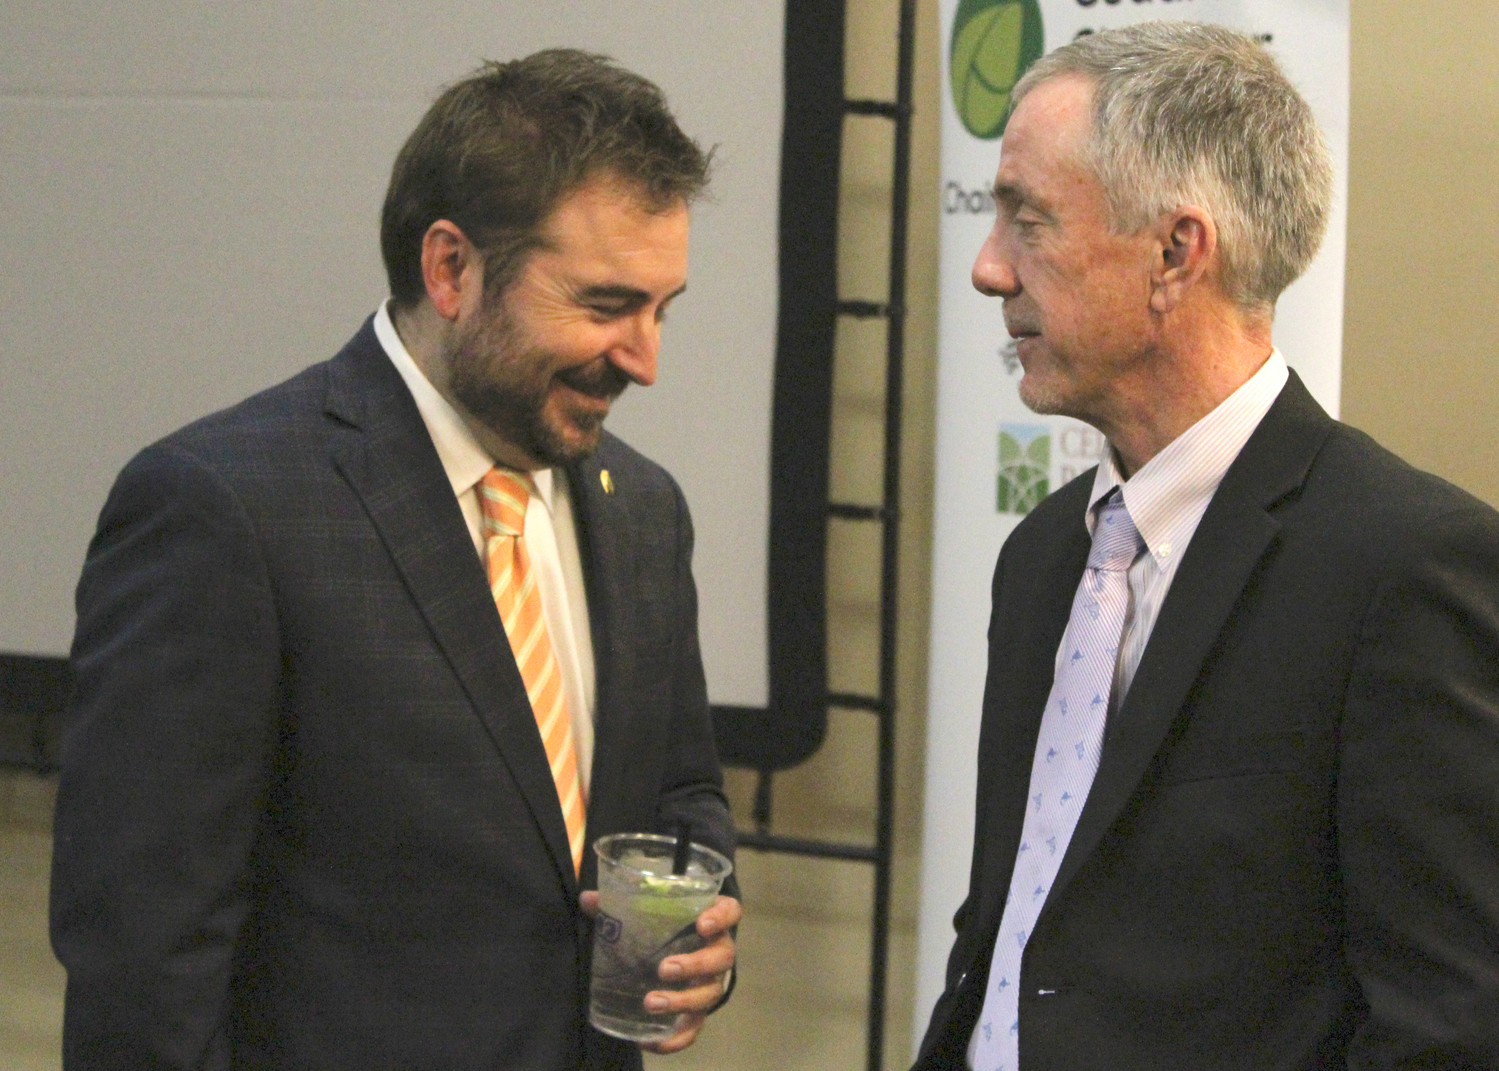 Mayor Matt Powell talks with assistant city manager Sam Roberts after the mayor's state of the city speech, where he announced he won't be seeking re-election, Wednesday, Jan. 10.